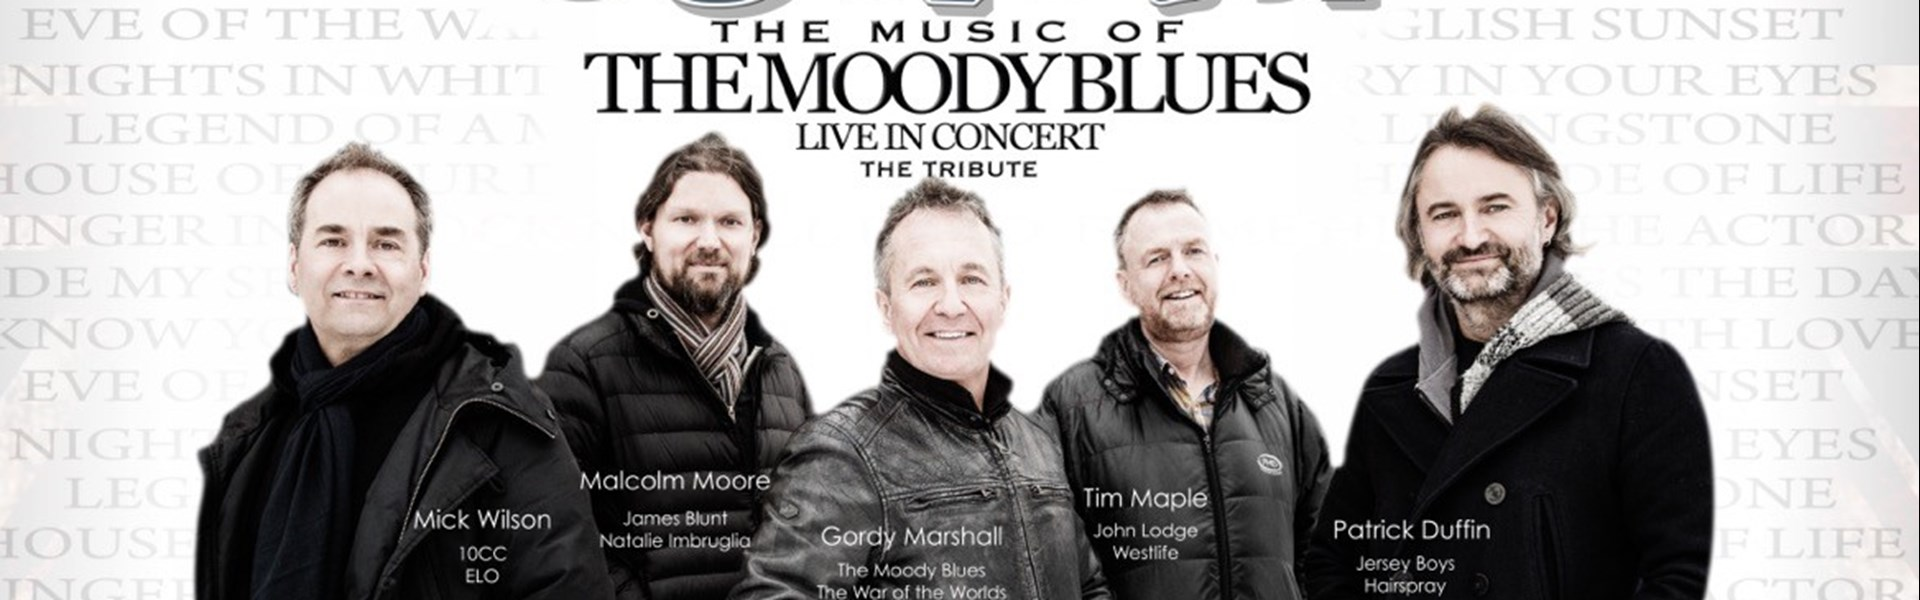 Go Now! The Music of the Moody Blues